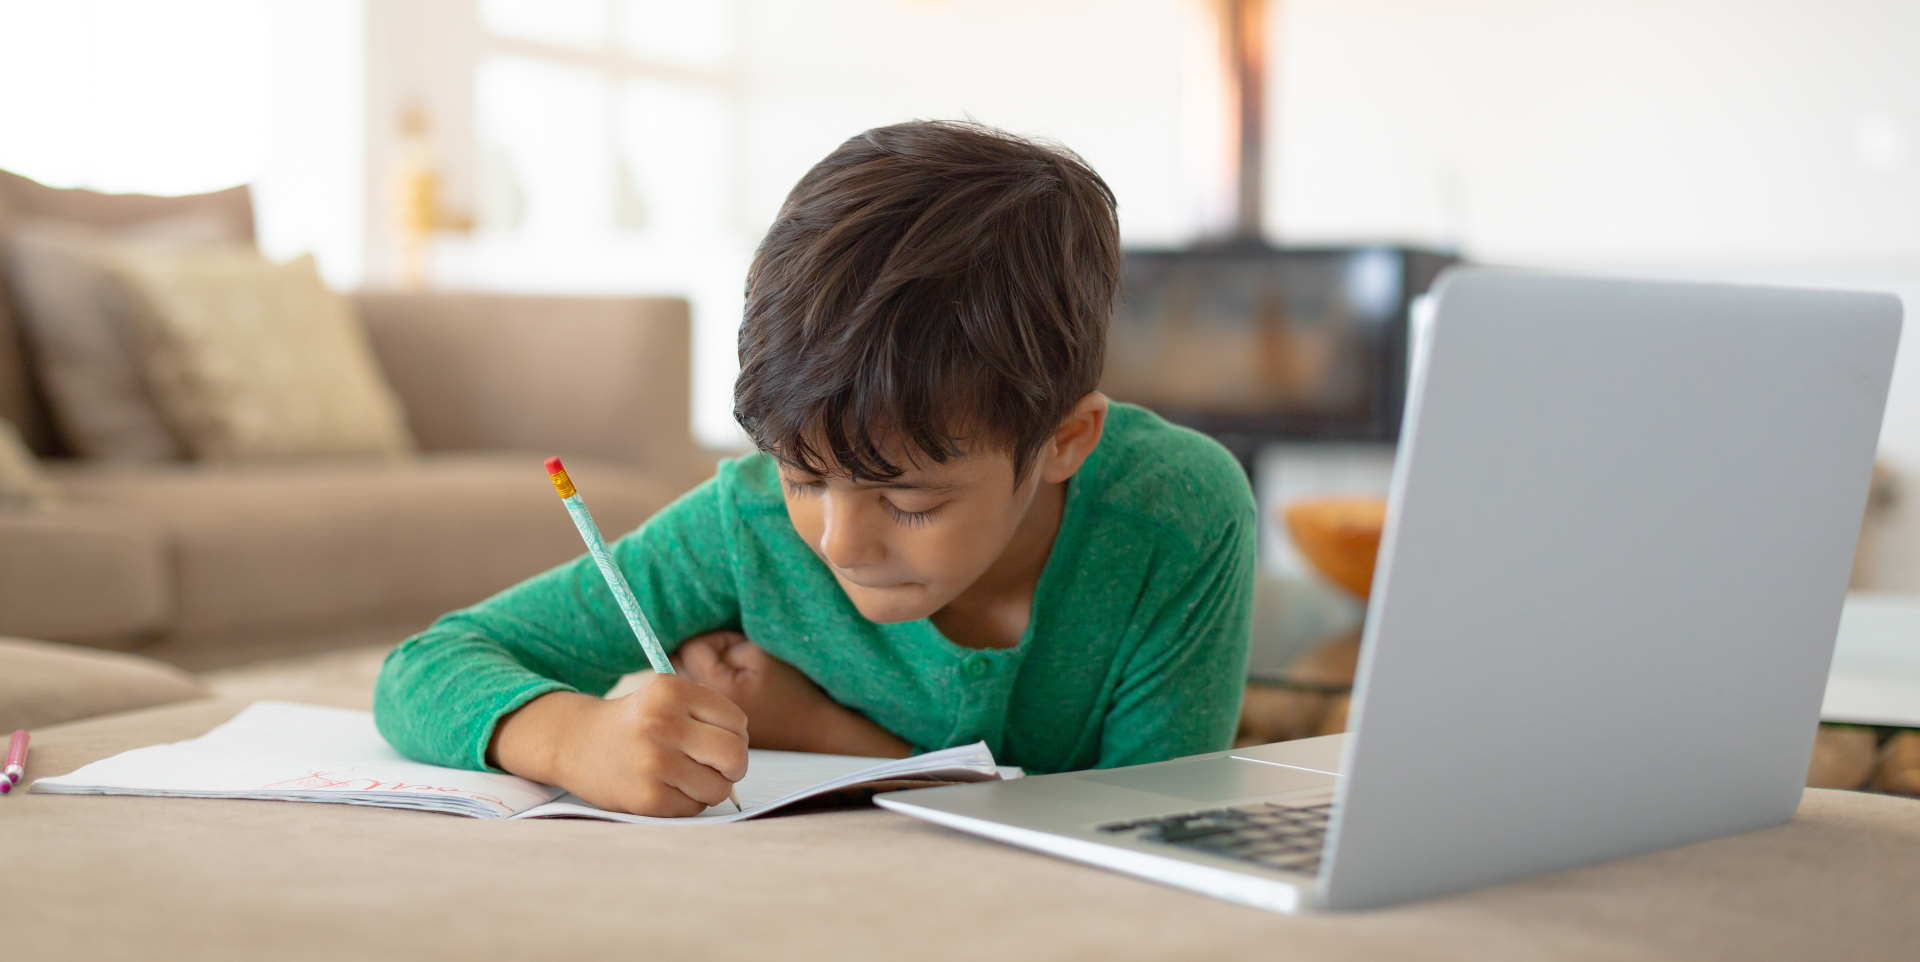 Broadband Access for Students and Families